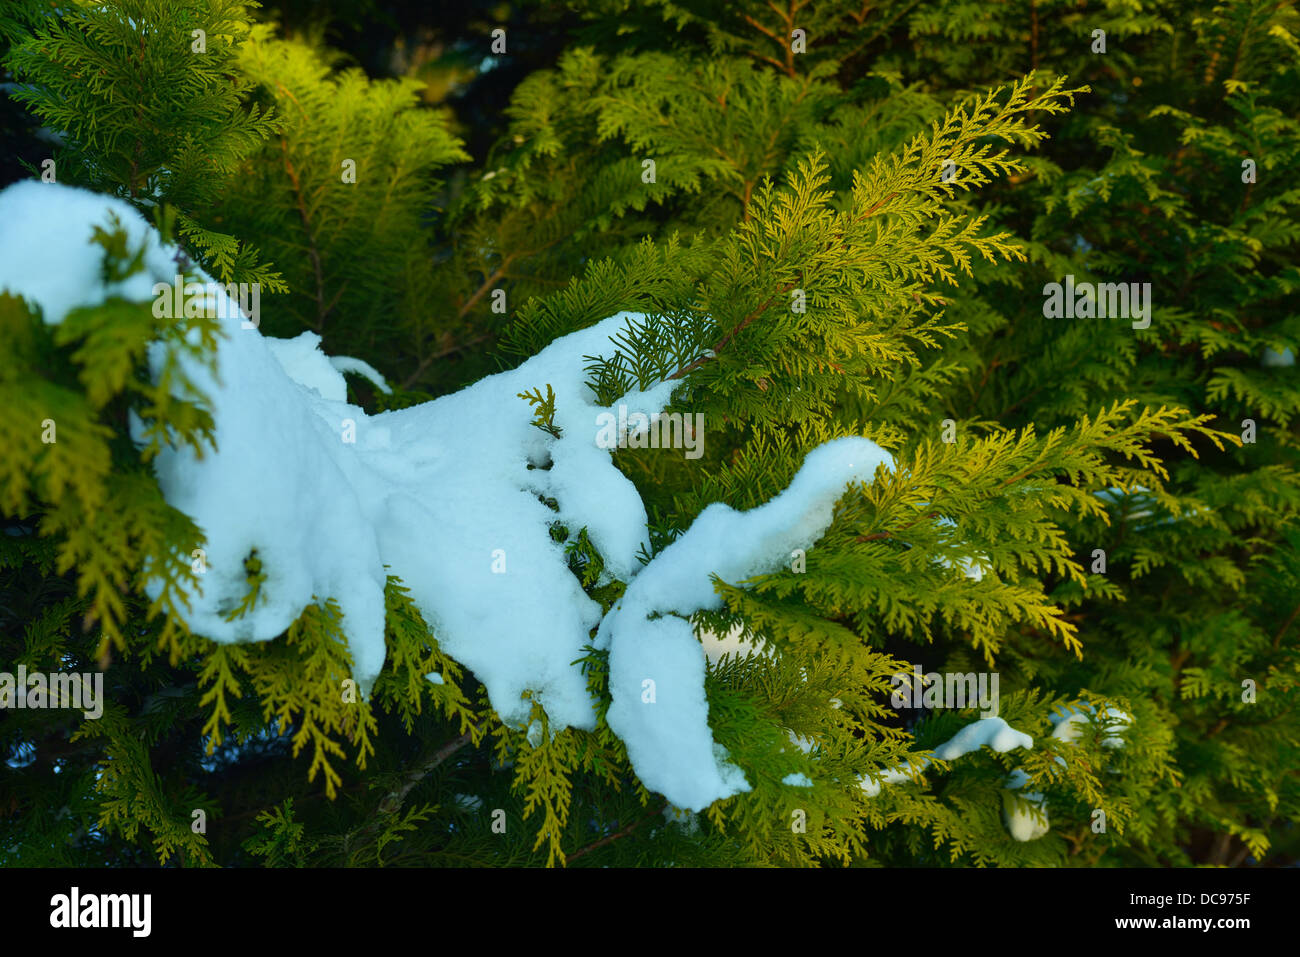 Conifer branches covered by melting snow - Stock Image